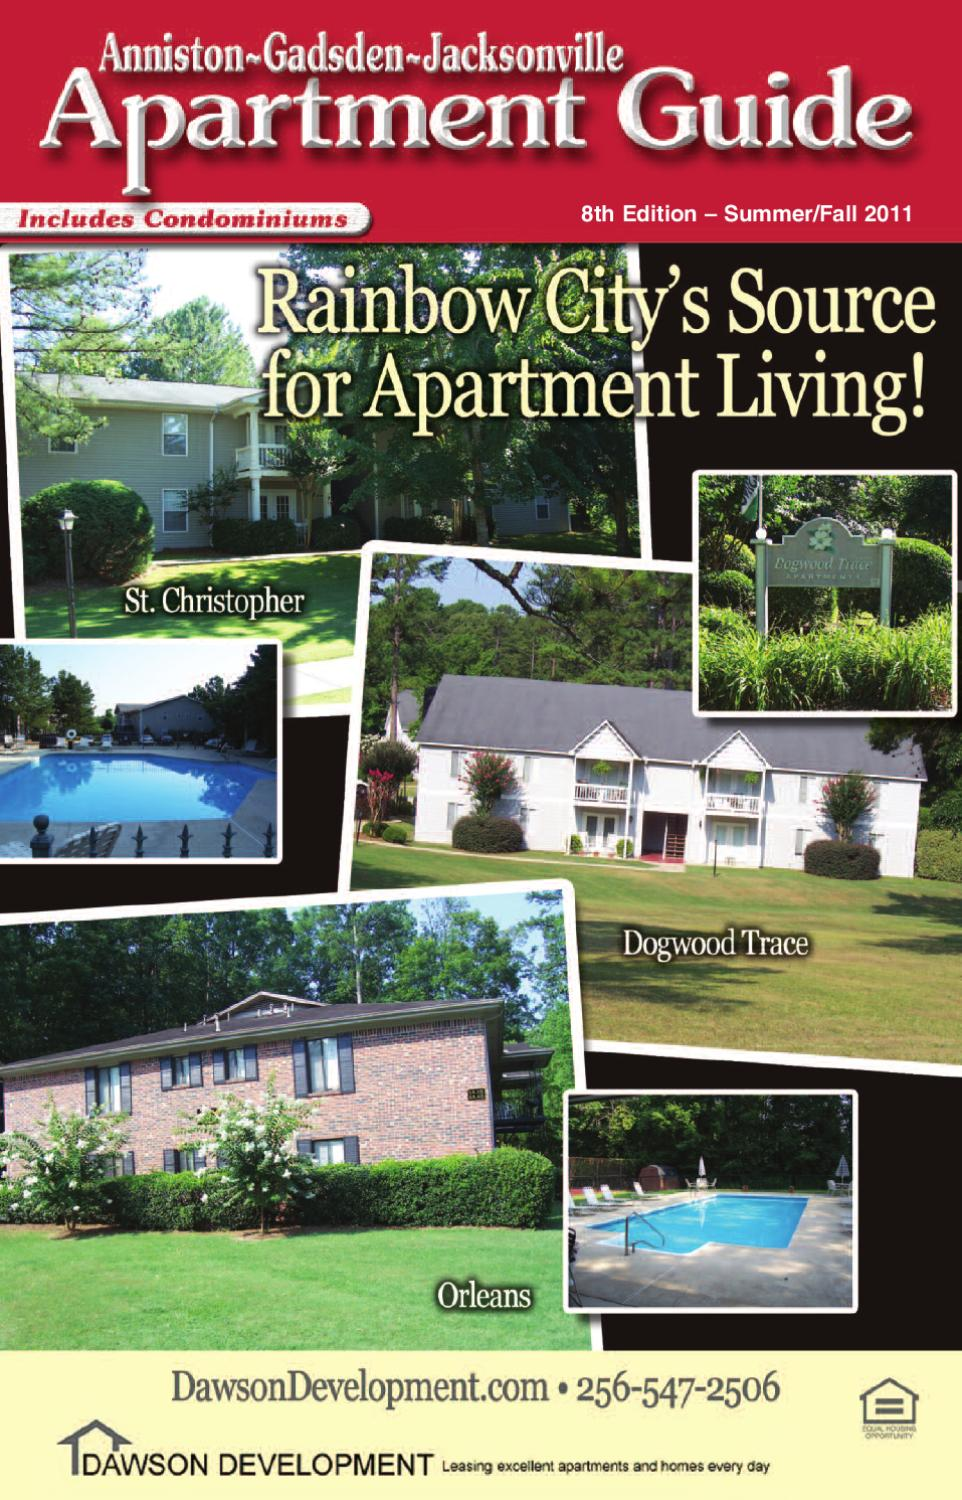 anniston/gadsden/jacksonville apartment guidejim andrews - issuu